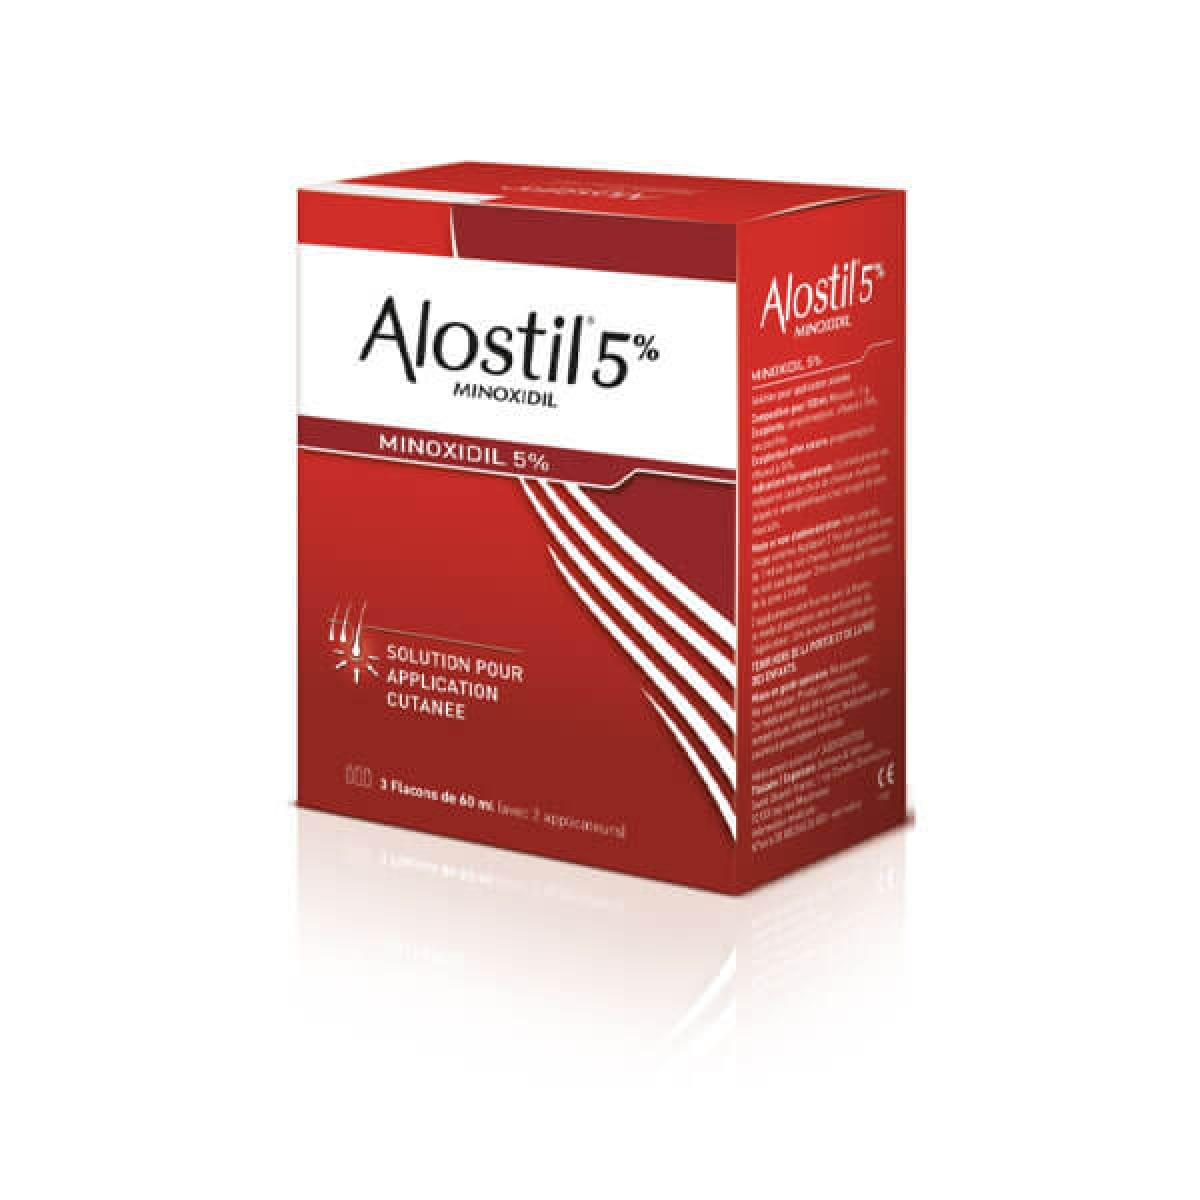 ALOSTIL Minoxidil 5% solution pour application cutanée 3x60ml - Médicaments  - Pharmarket